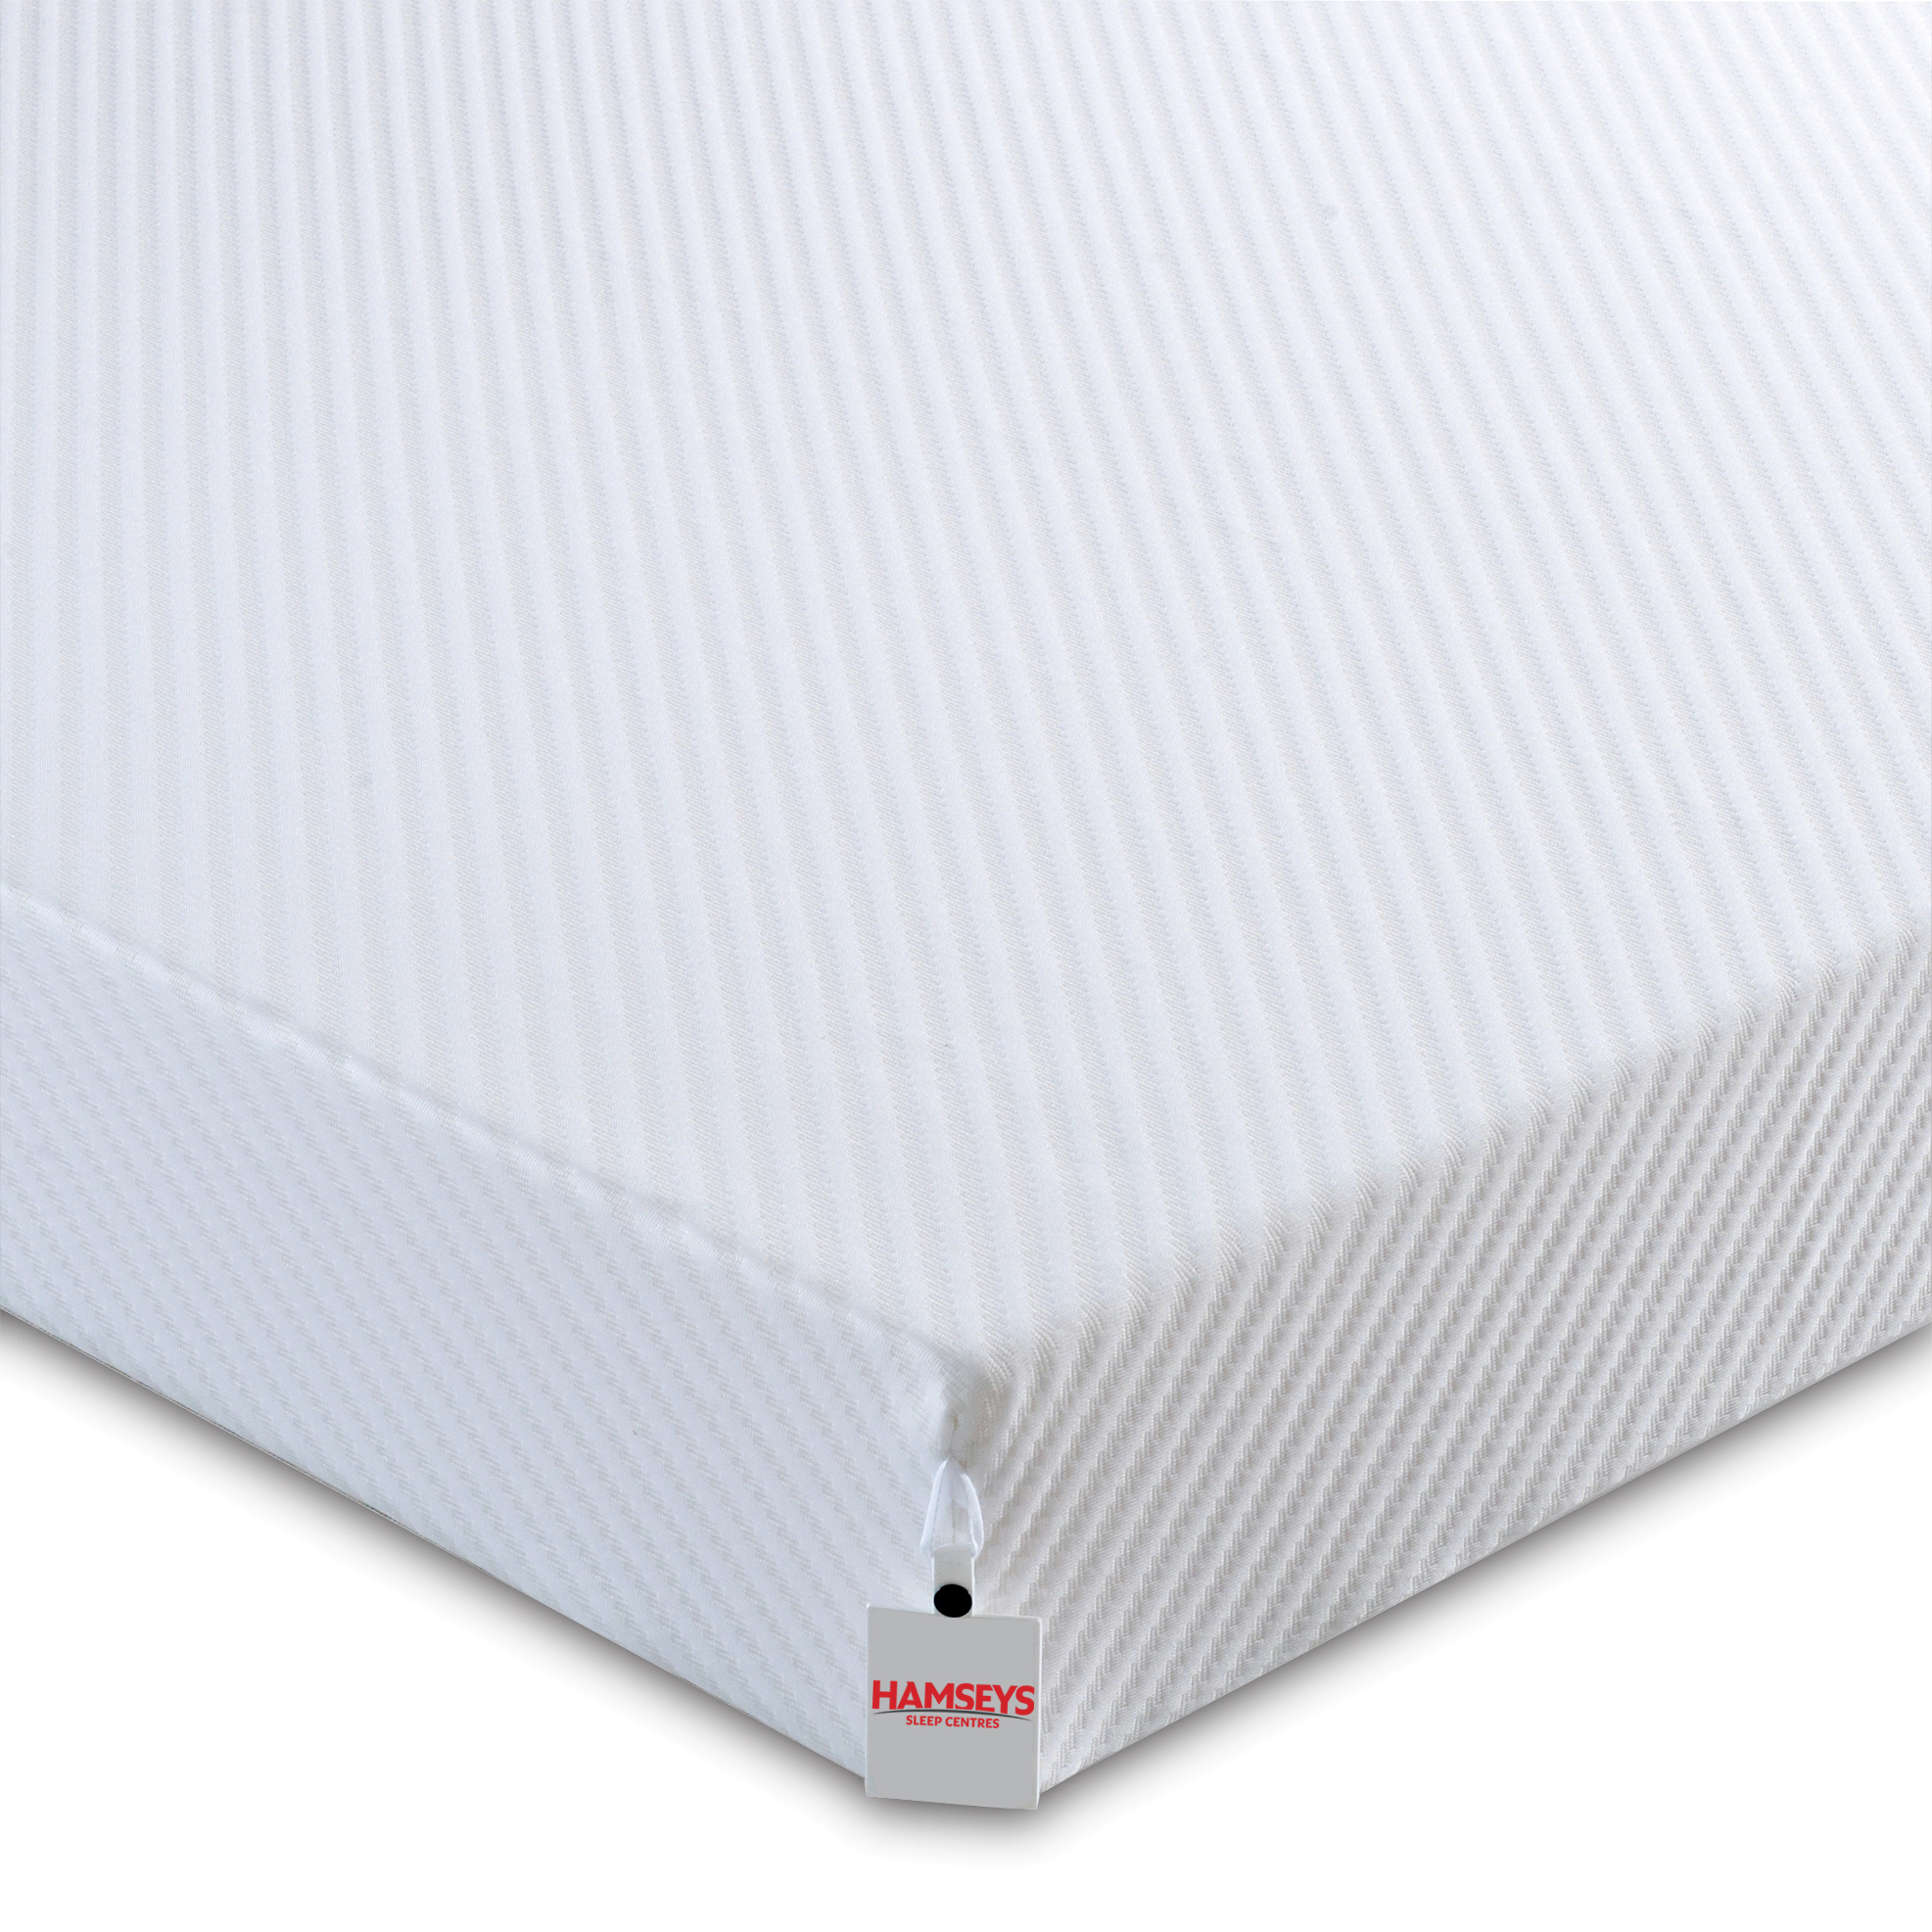 Breasley Mattress Review Dreamflex 140 Online Bed And Mattress Store Shops In